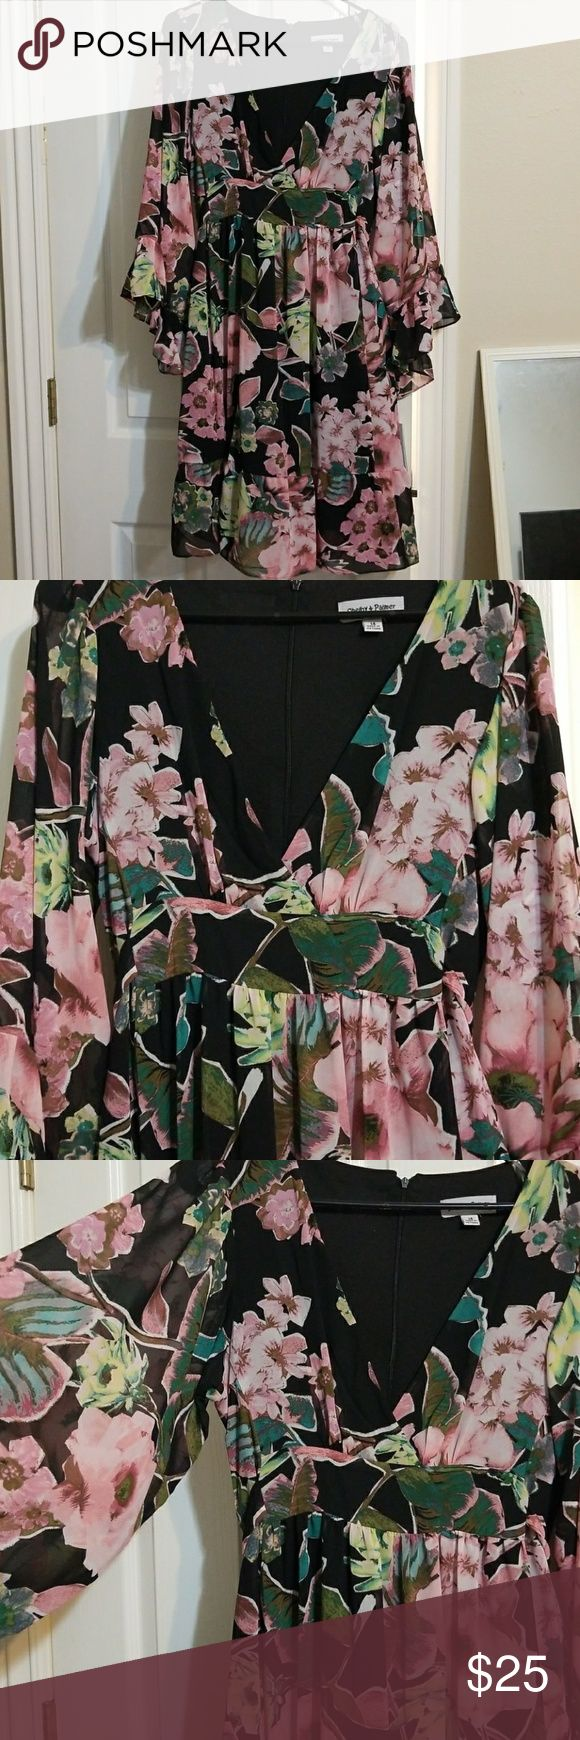 Black and Sage Surplis Dress This dress features a floral pattern with a V-neck front, flowy sleeves, and a tie in the back so it can be adjusted to fit your waist. It has never been worn. Shelby & Palmer Dresses